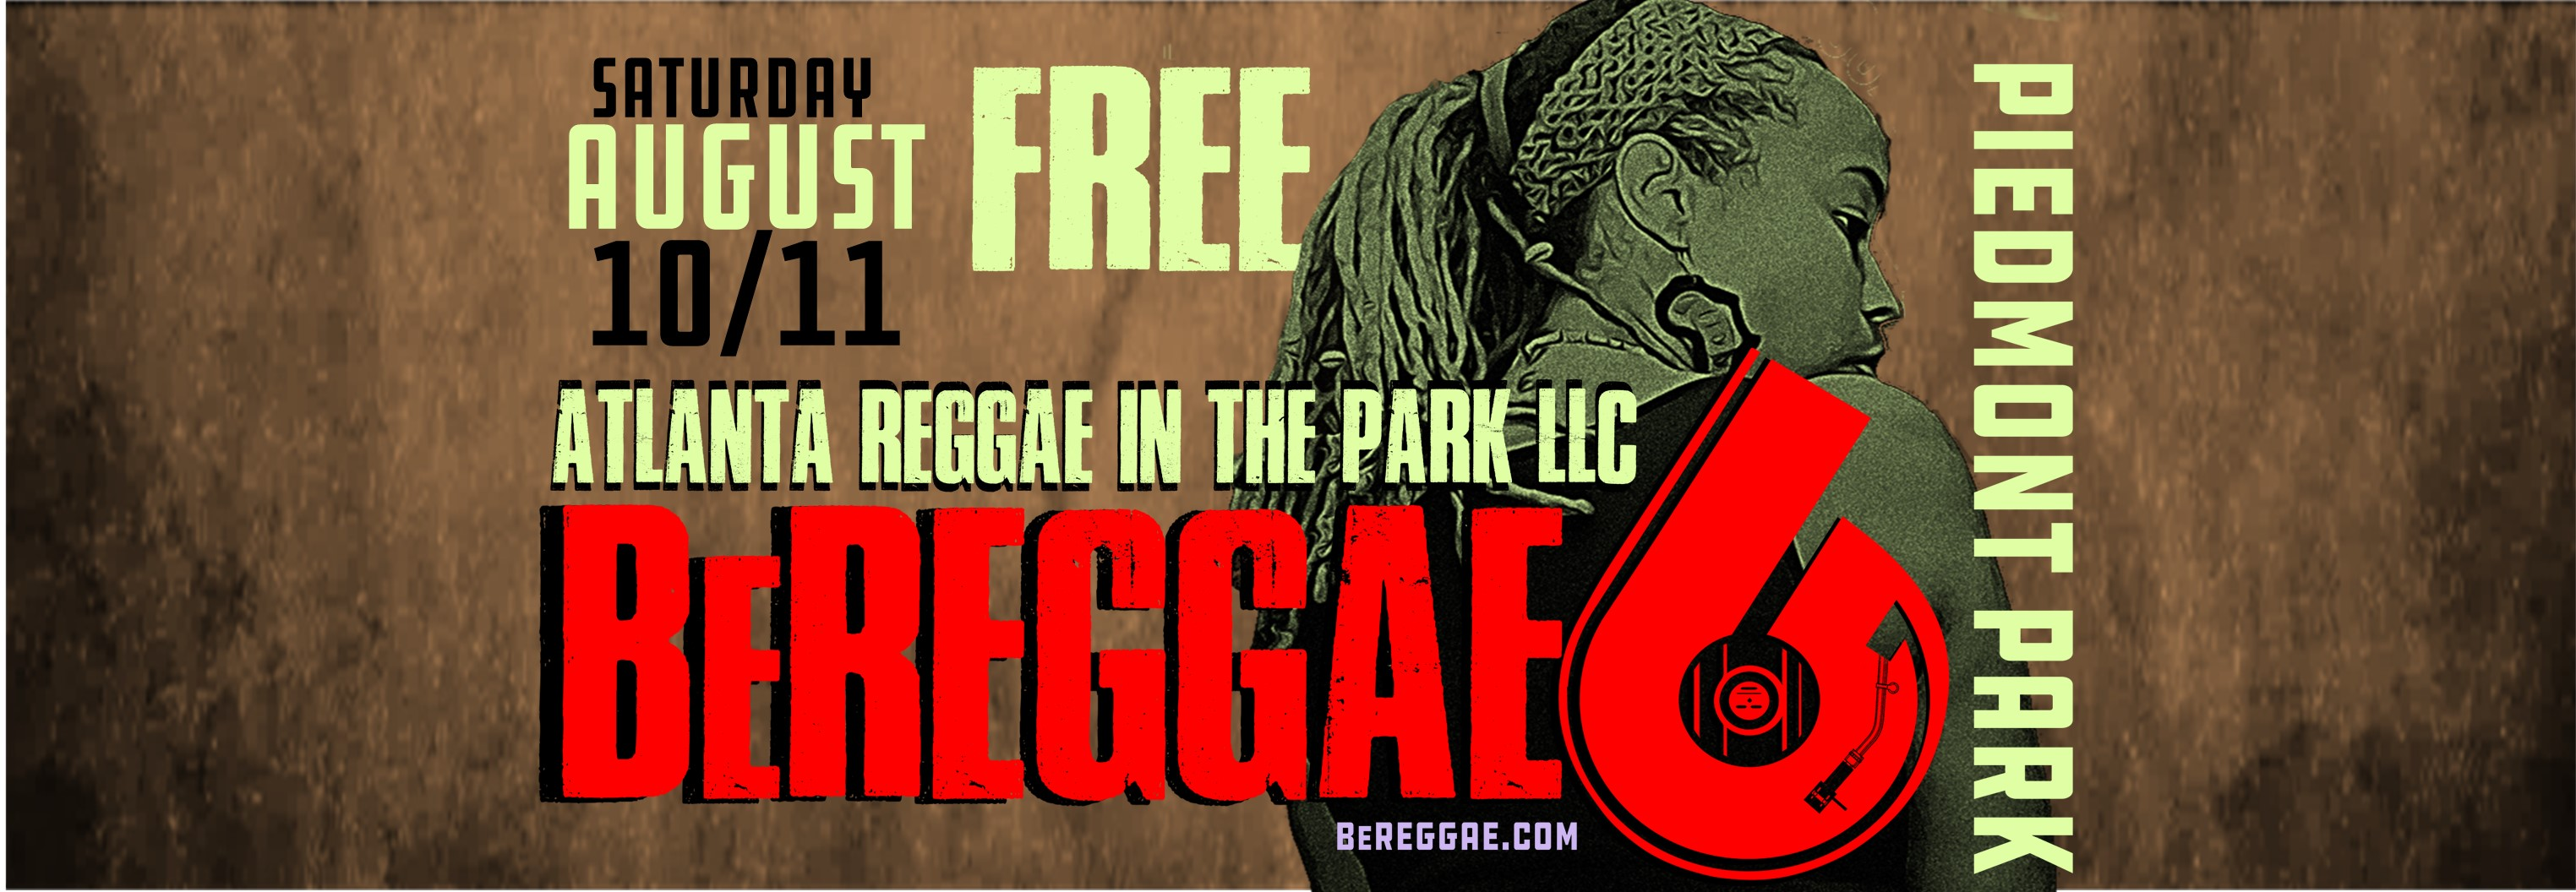 Atlanta Reggae In The Park, LLC